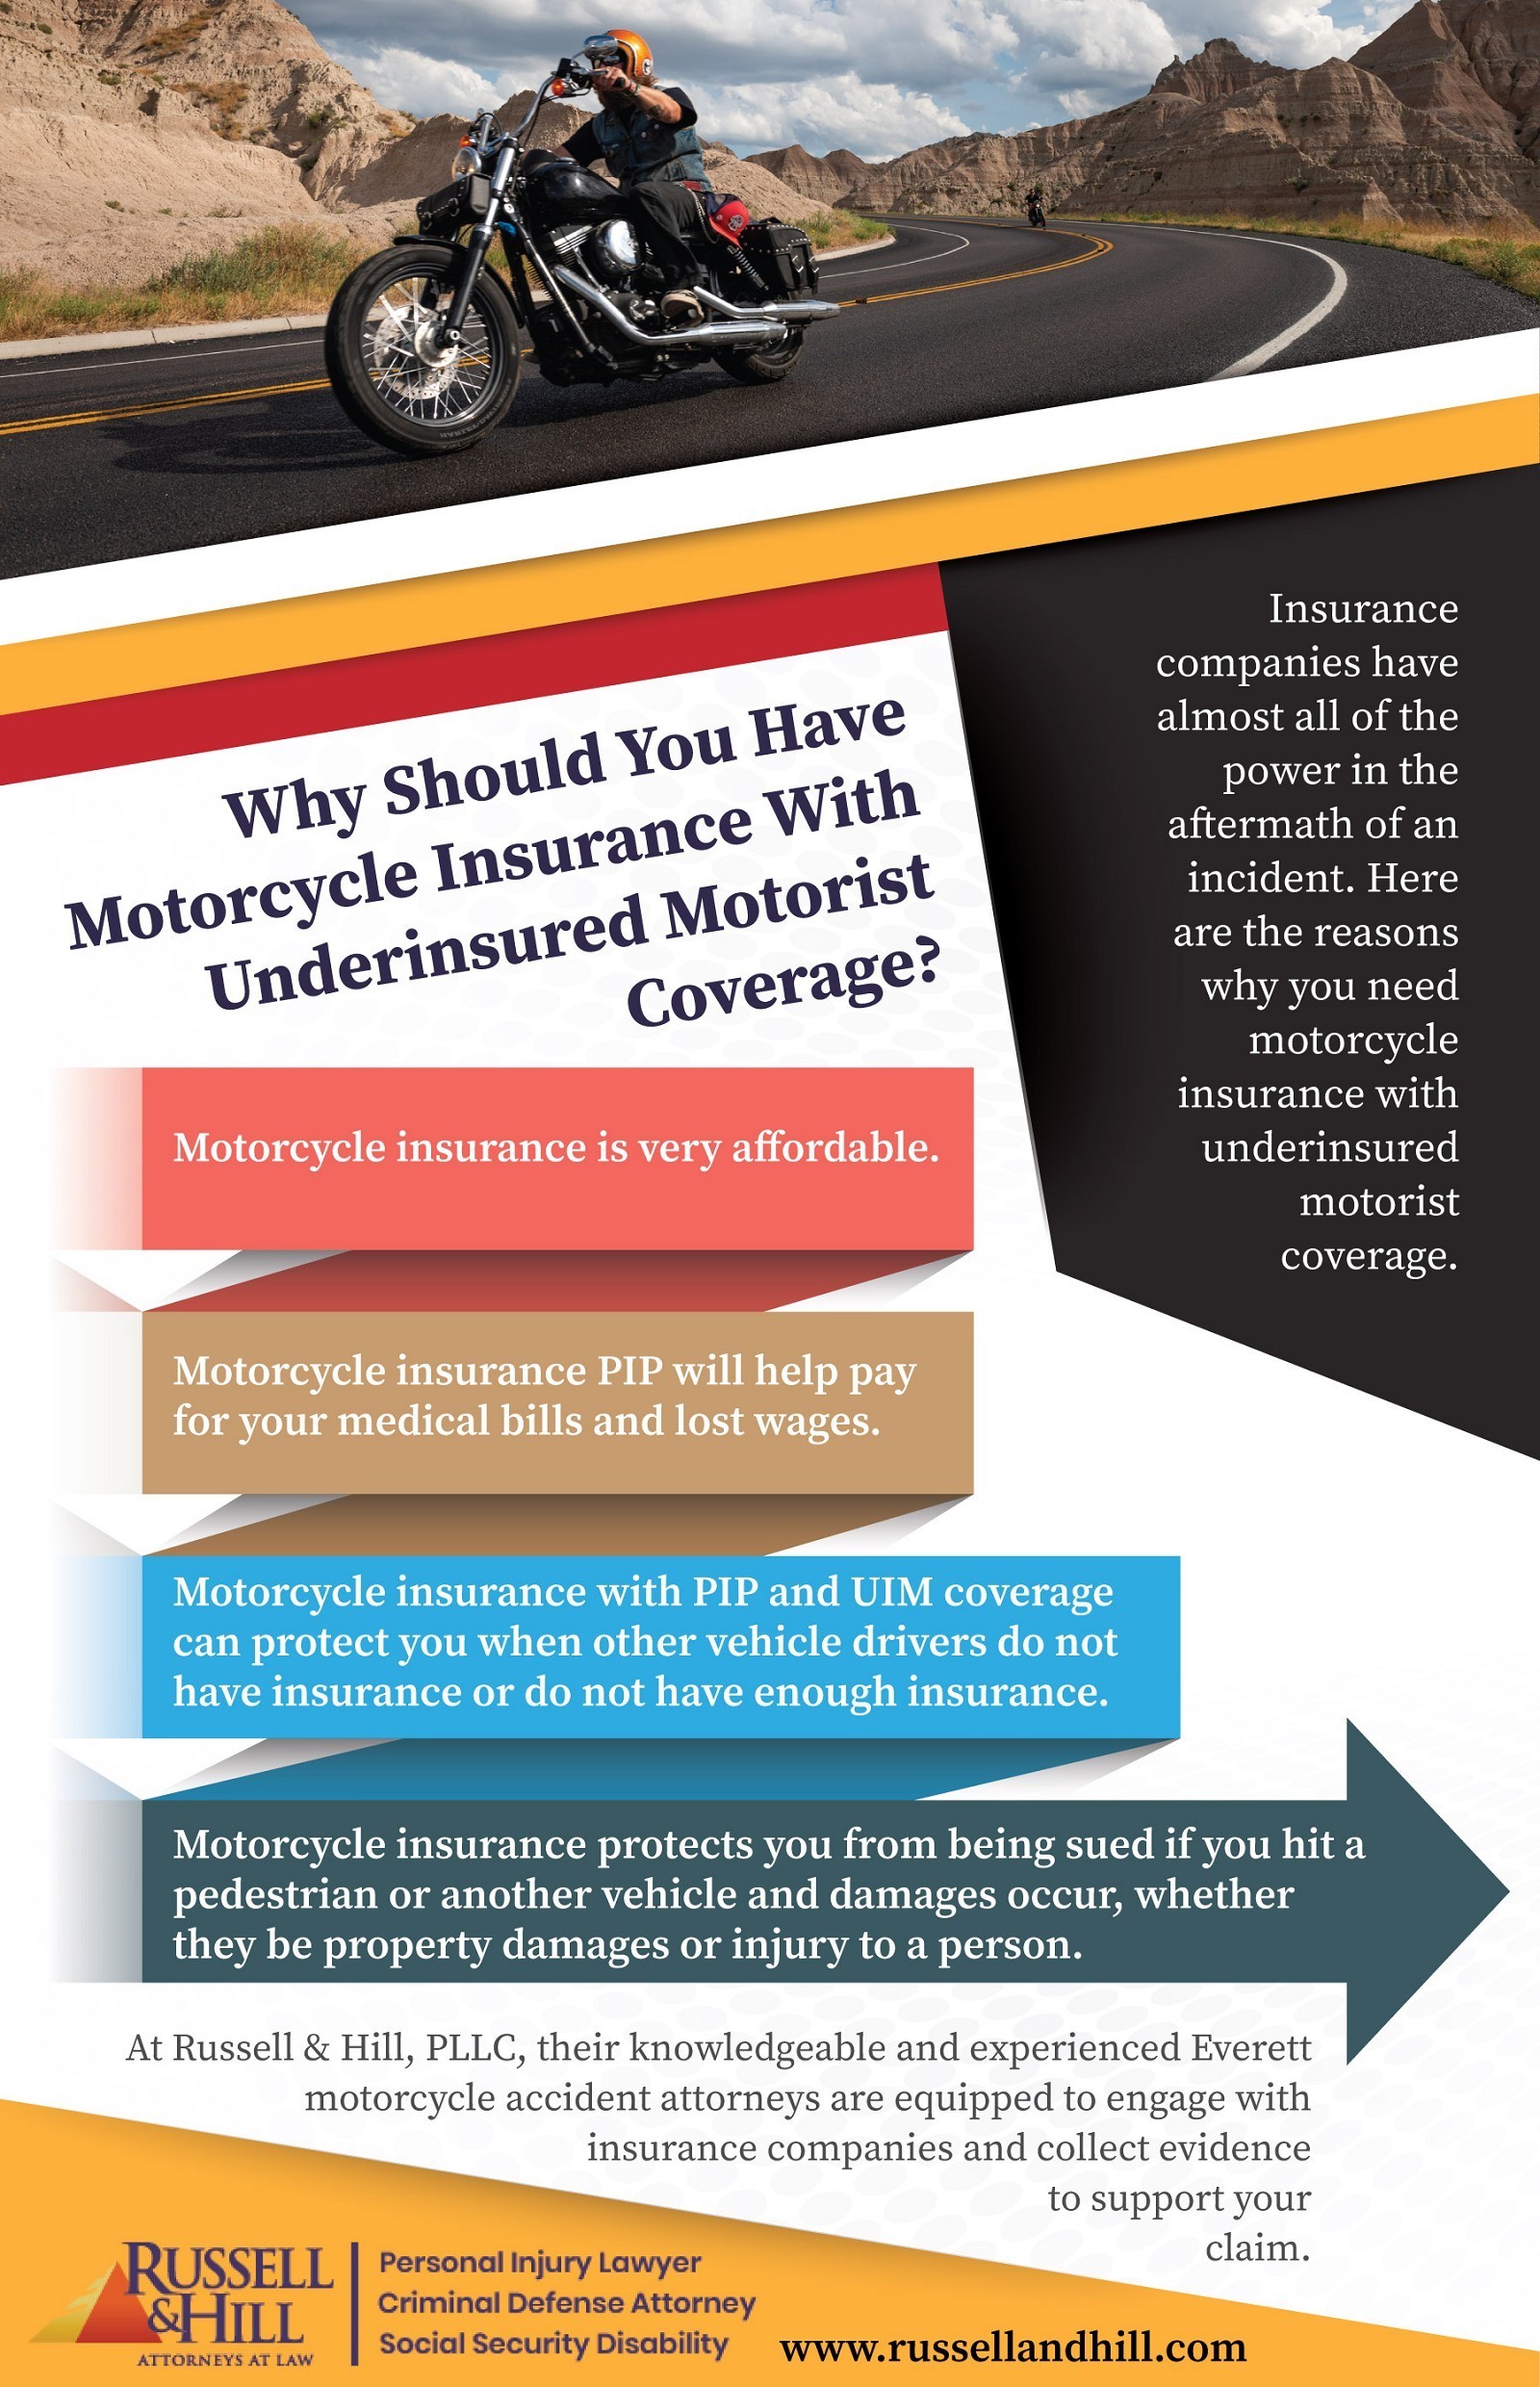 Why Should You Have Motorcycle Insurance With Underinsured Motorist Coverage?